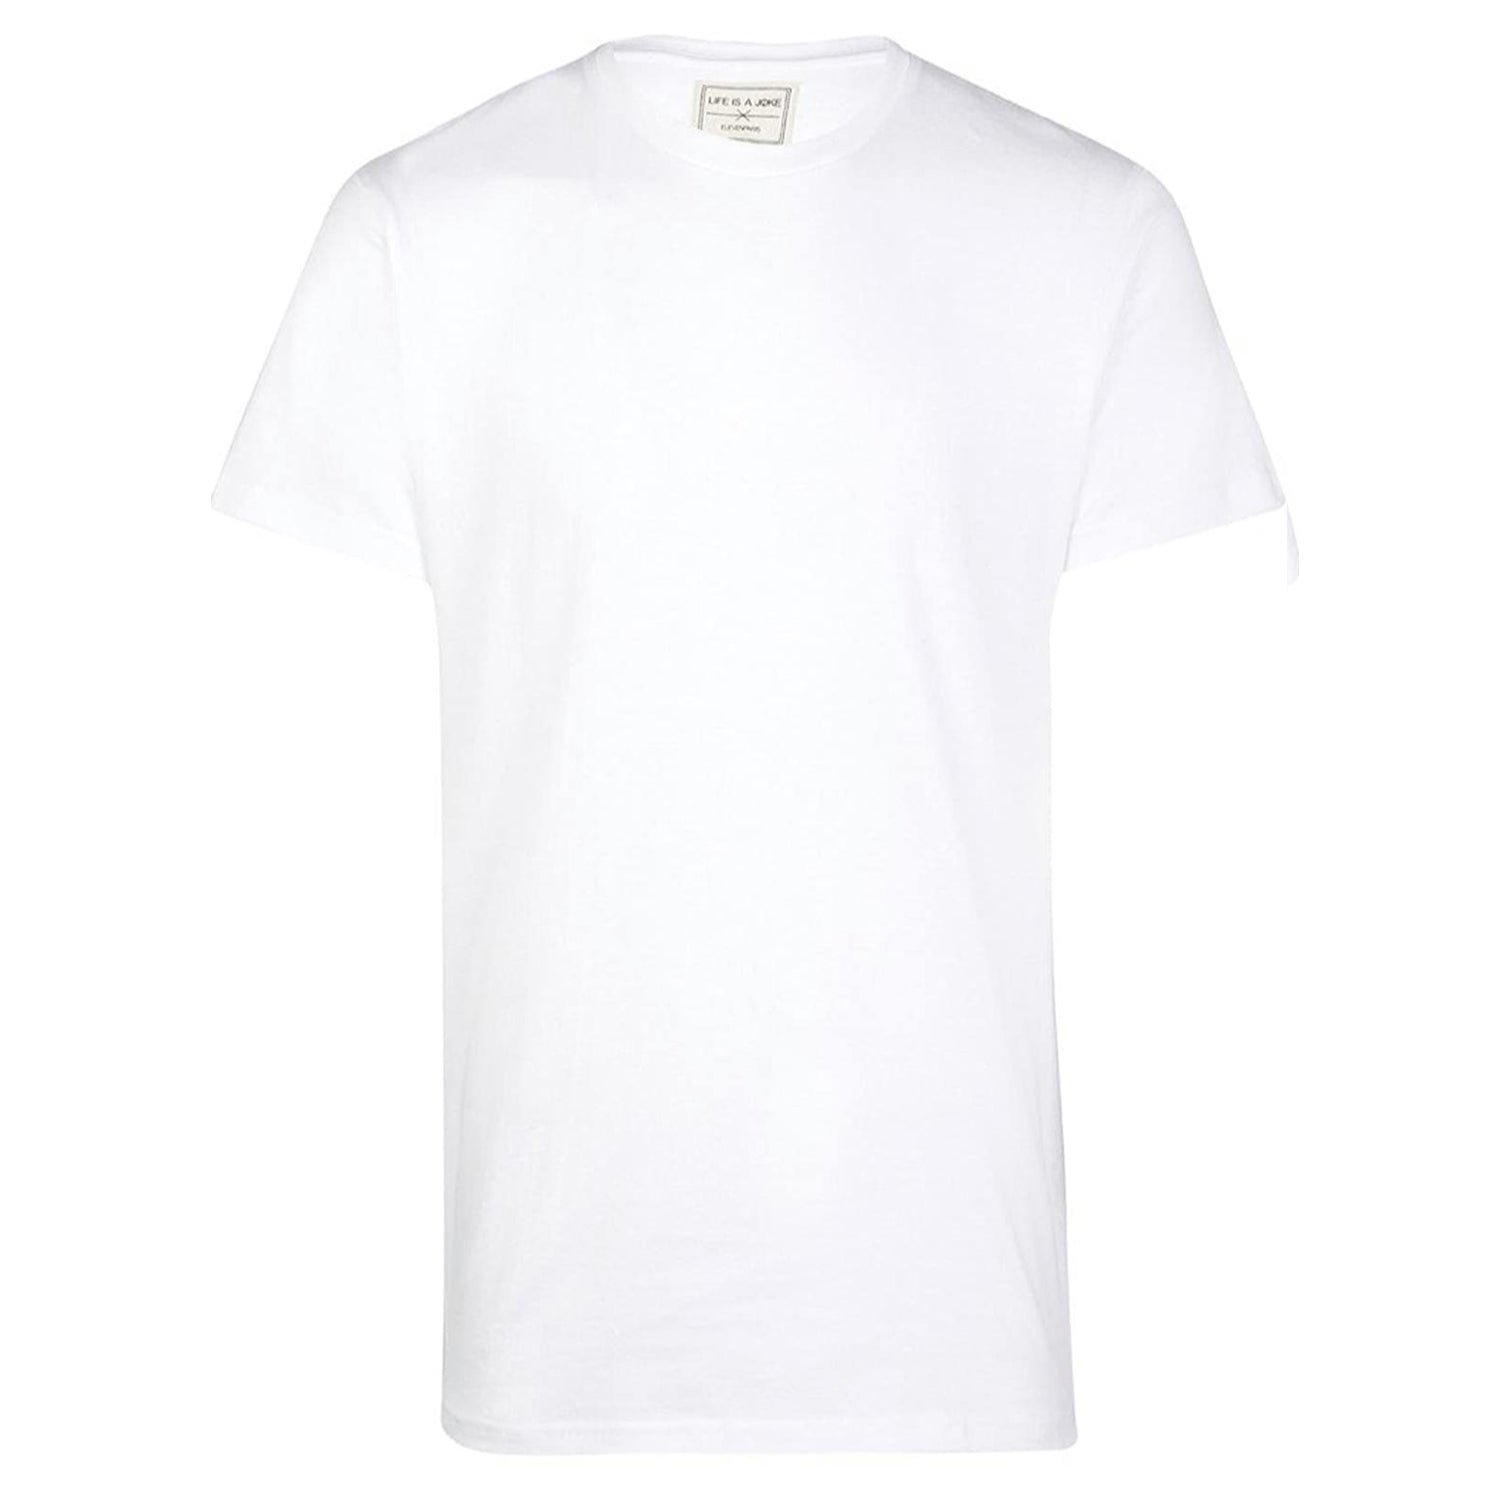 Elevenparis Notorious B.I.G Back Print T-Shirt